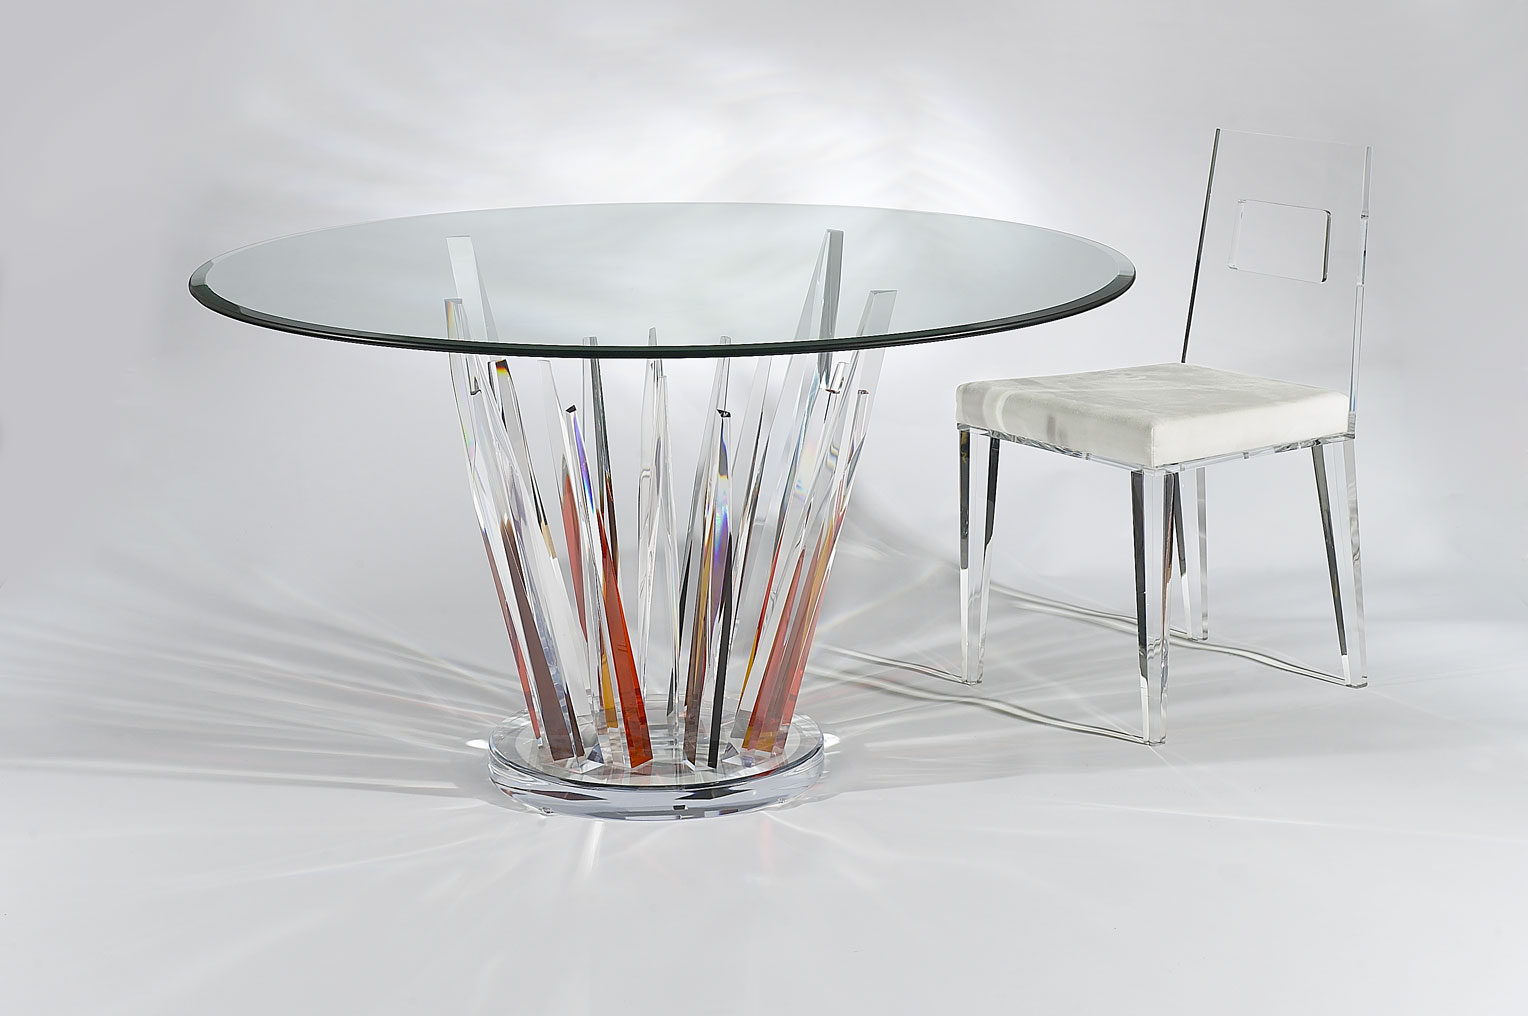 6 chair dining table qvc swivel crystals colored dinette, acrylic chair, furniture